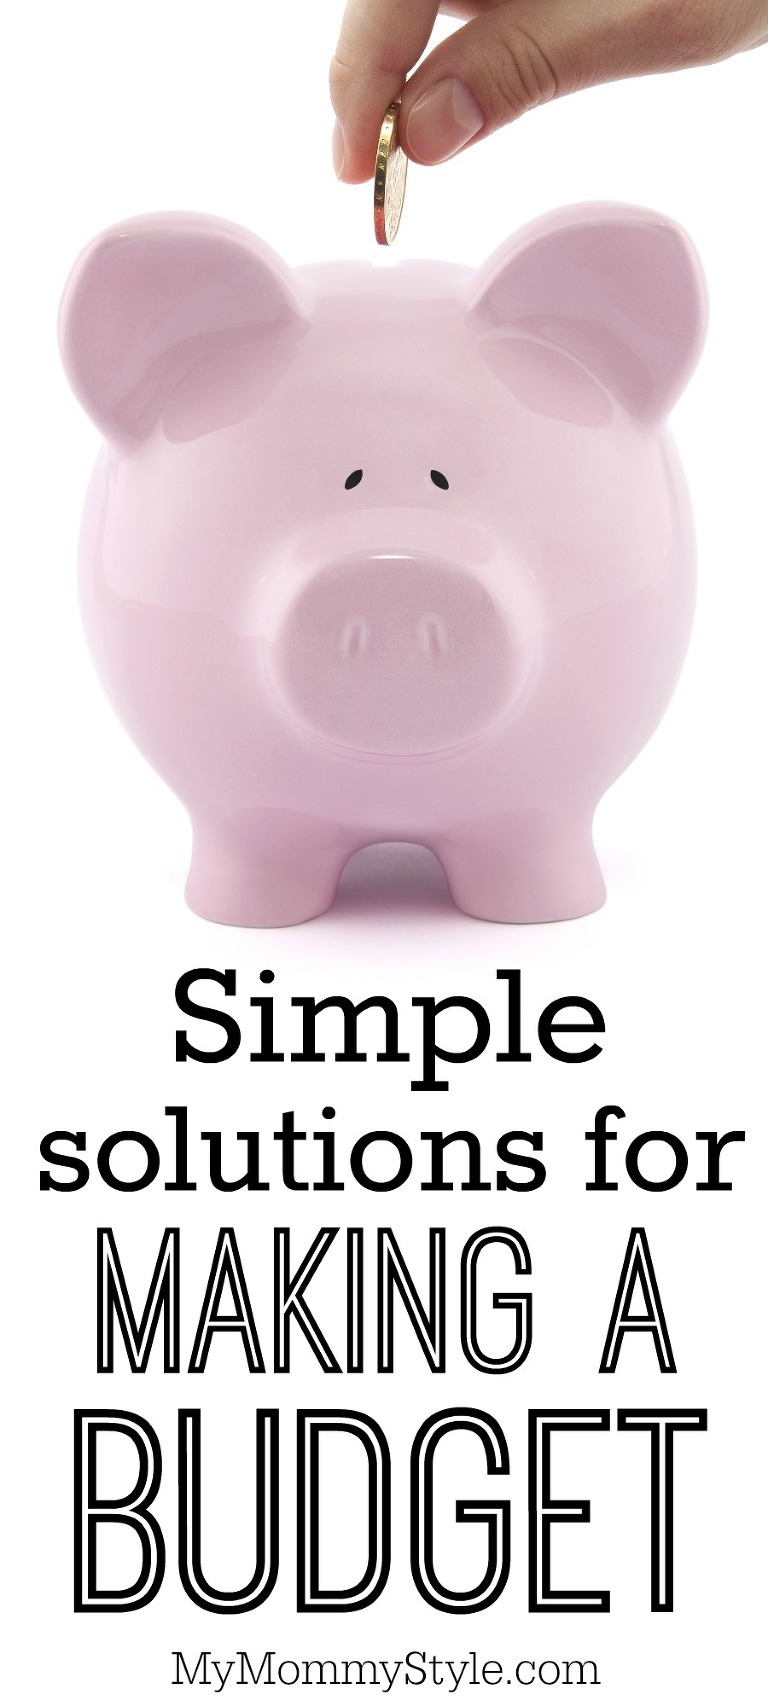 Simple solutions for making a budget